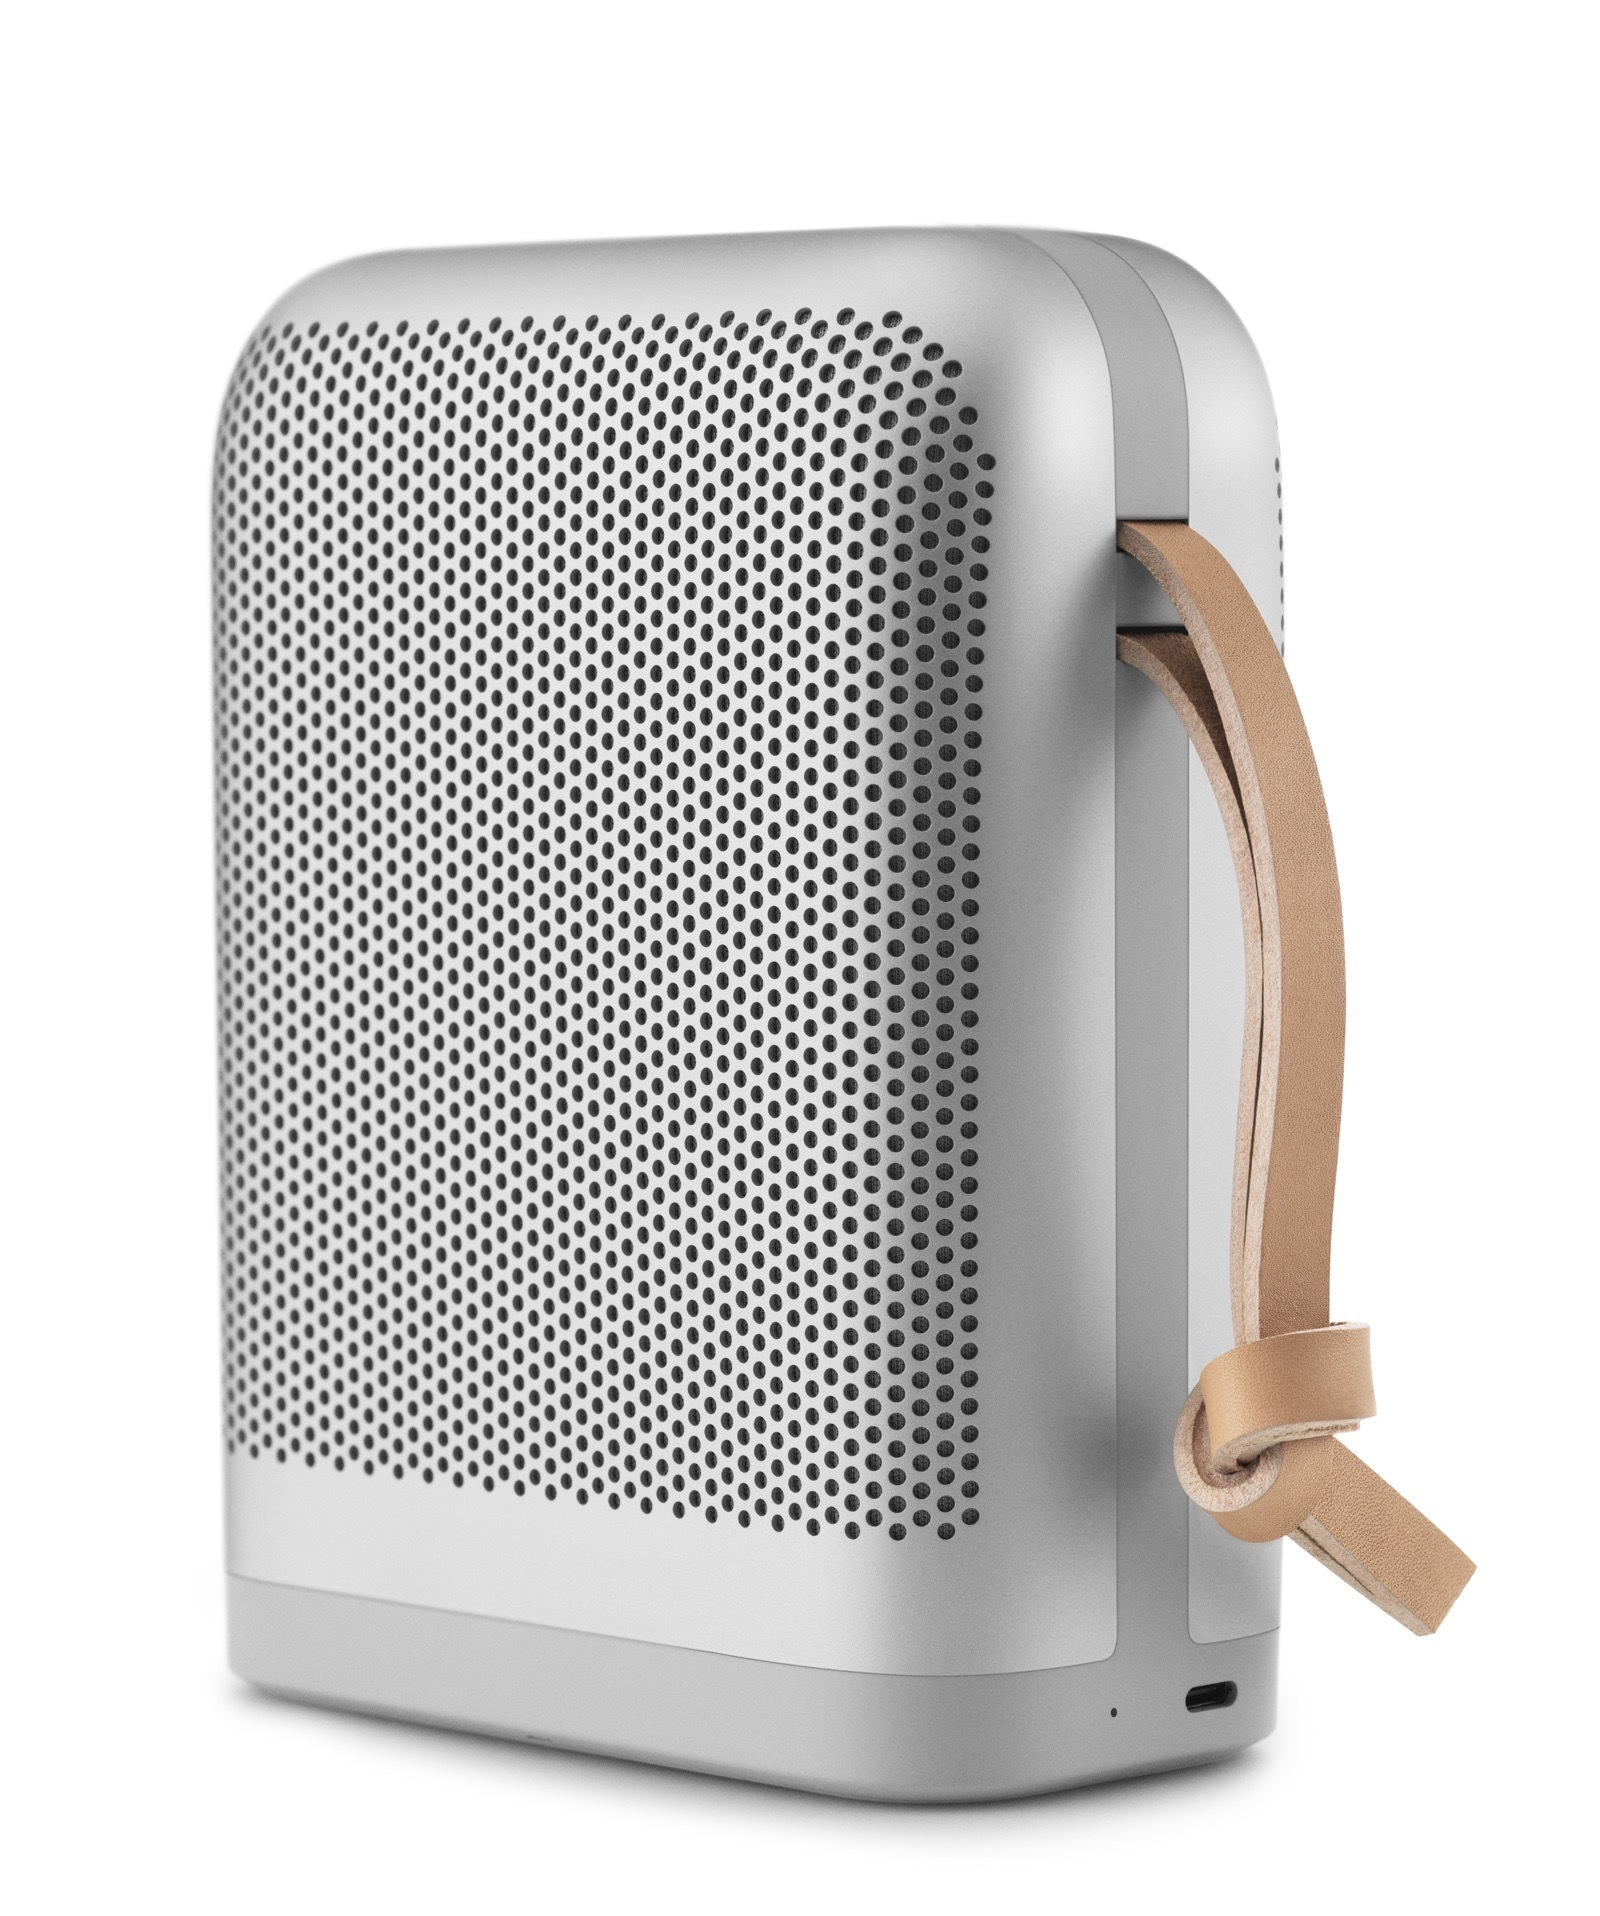 beoplay-p6-natural-26622324737-o-1.jpg